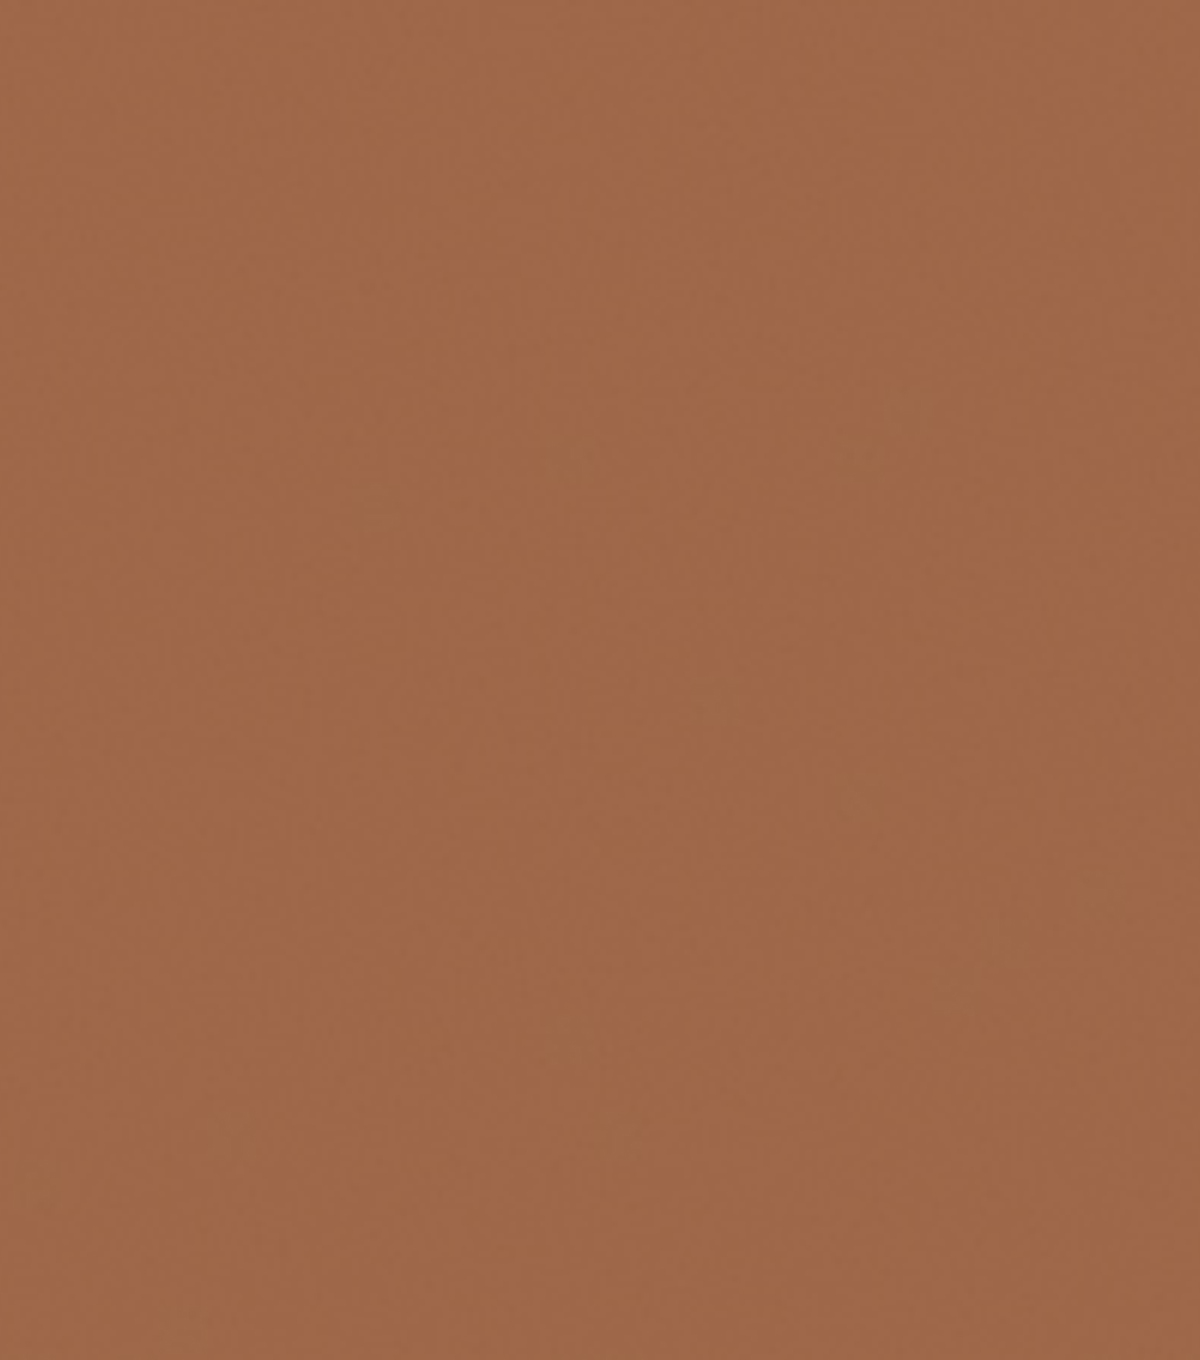 Delta Ceramcoat Acrylic Paint 2 oz, Autumn Brown